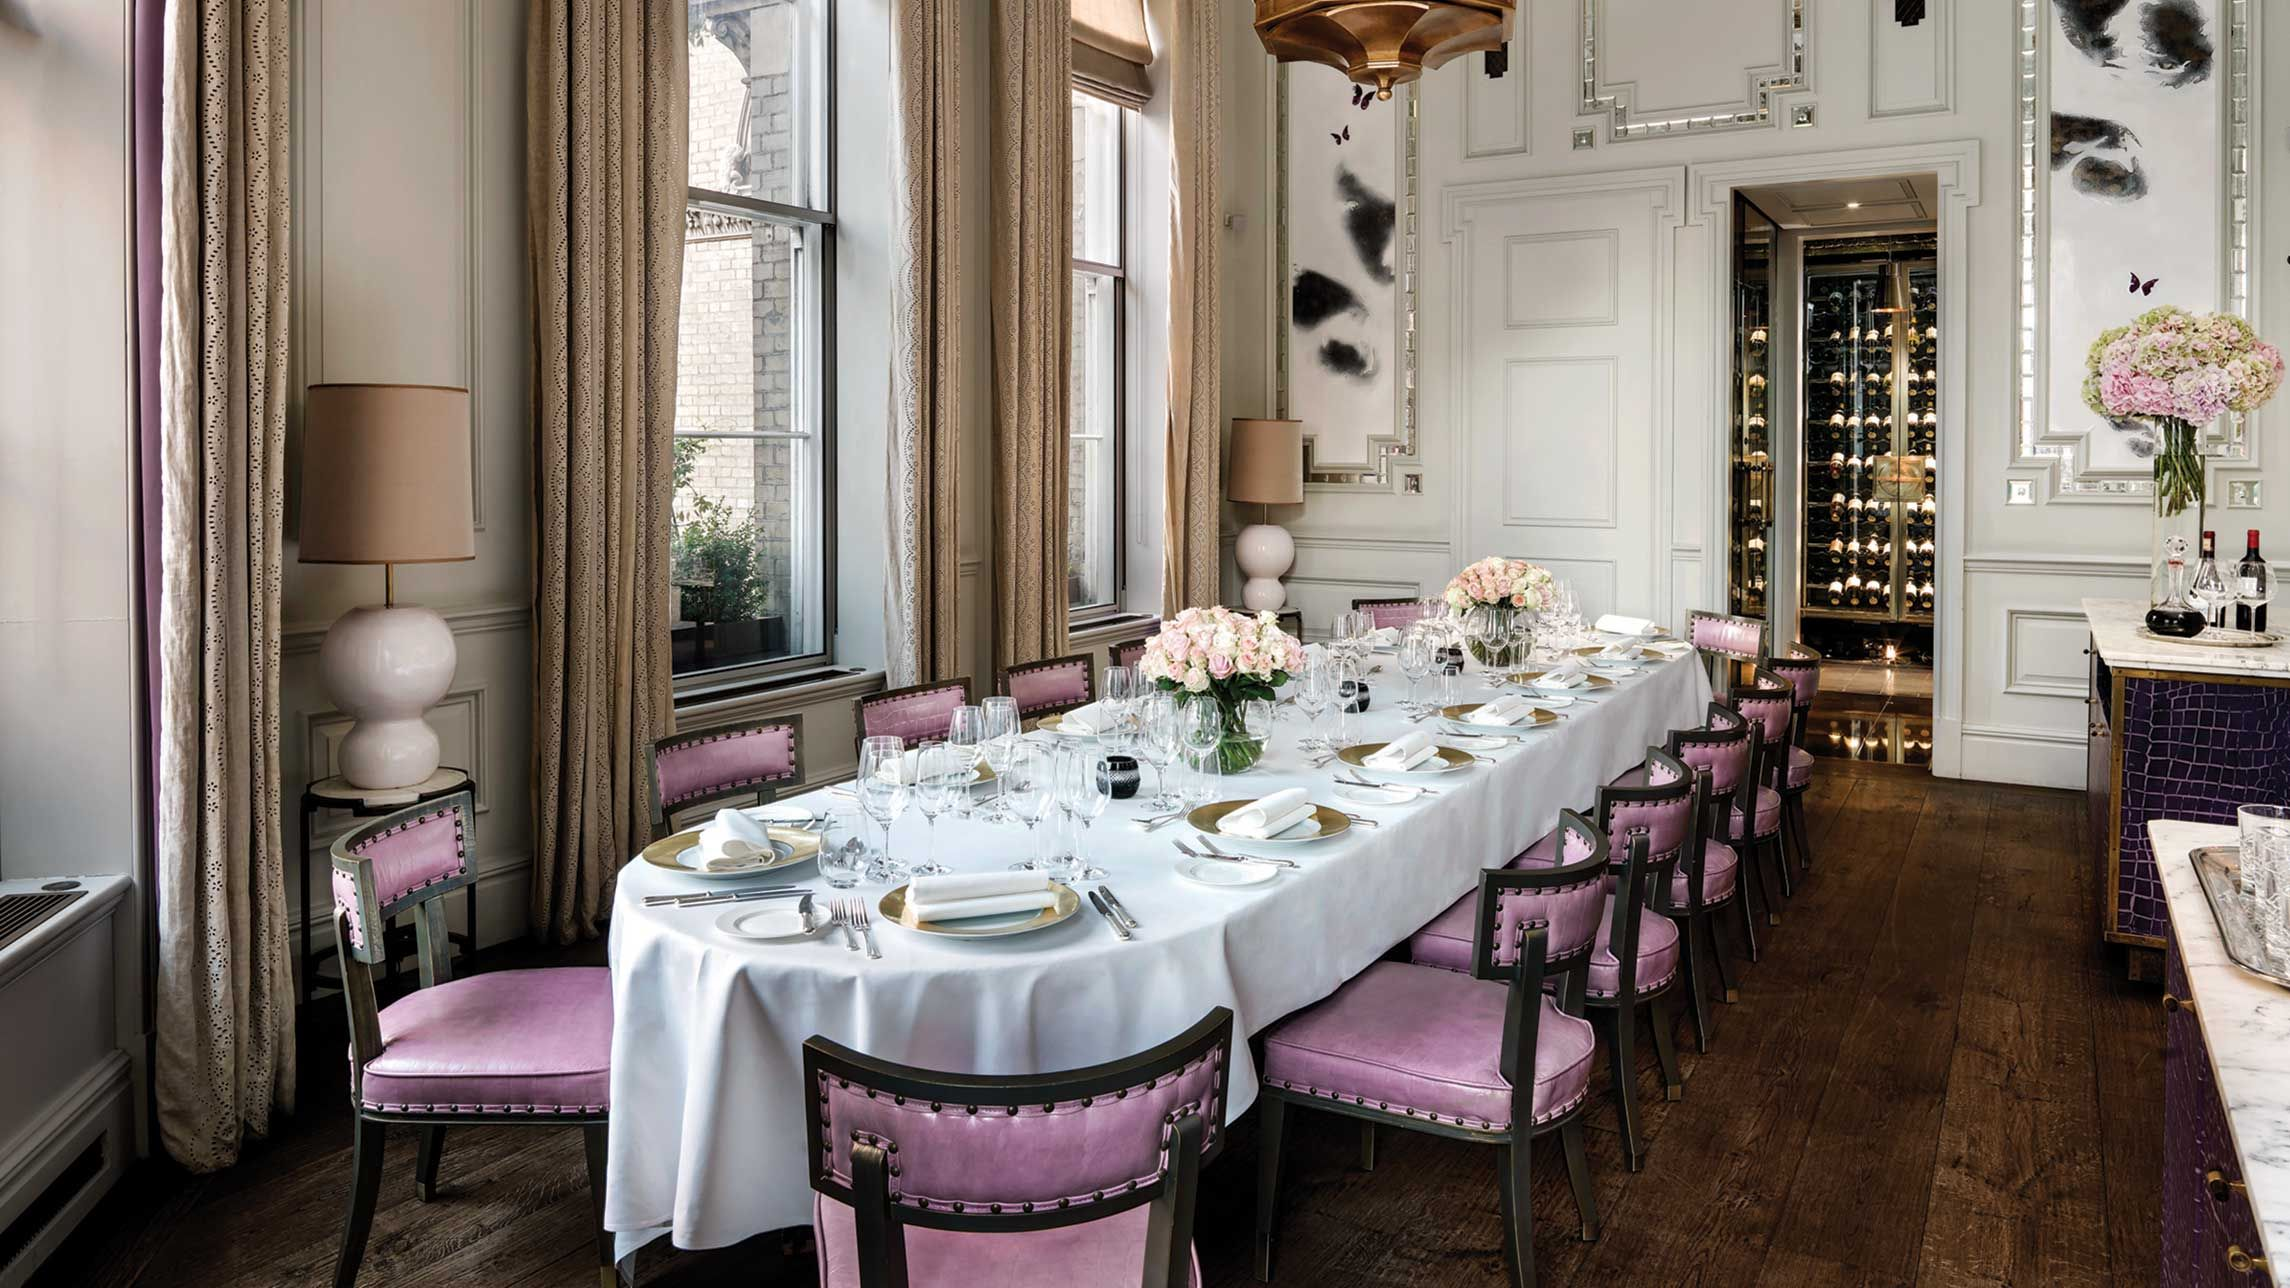 Langham Dining Room Extraordinary From Intimate Gatherings To Extravagant Banquets The Langham Decorating Inspiration